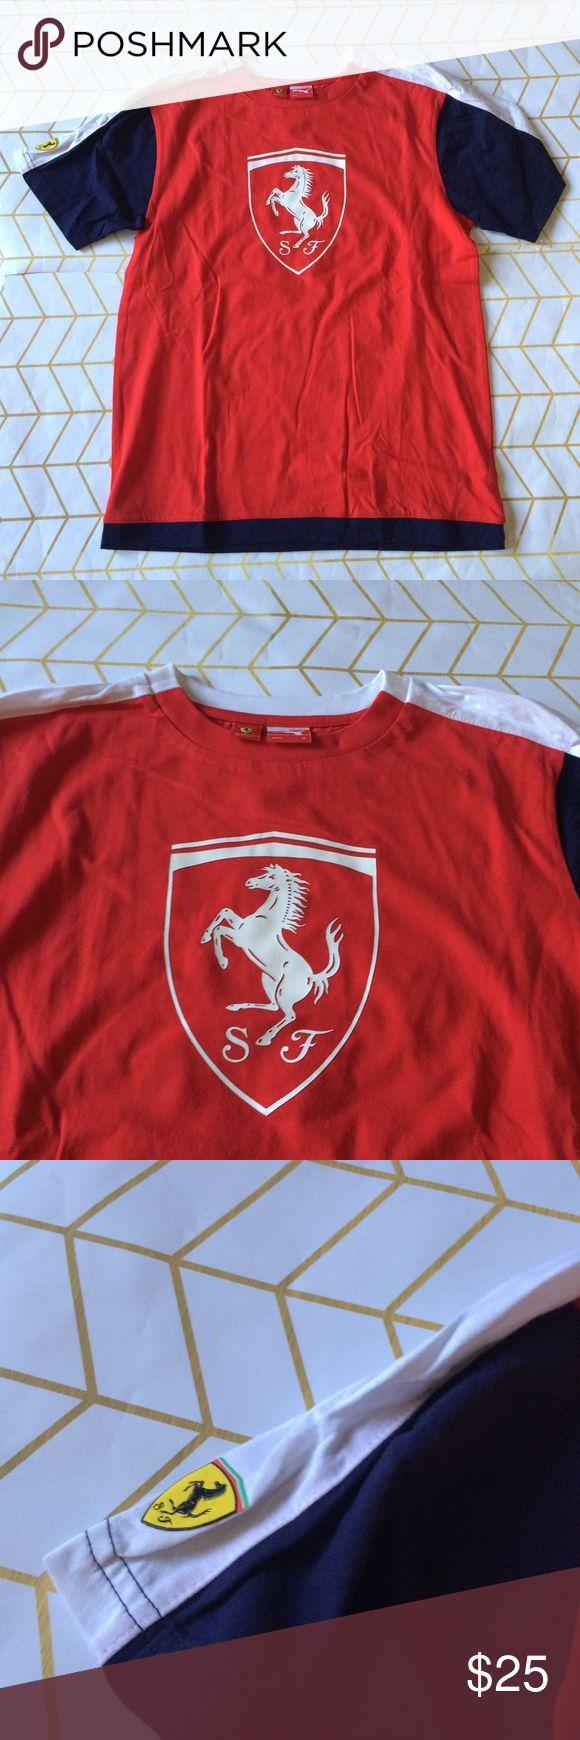 Sample Sale! Puma Ferrari Boys Tee, M Ferrari and Puma Ferrari Designer Sample Sale! Please read: Tees are down to $25 (retail $45+), Polos/Sweatpants $35 (retail $70+), Jeans/Sweatshirts $45 (retail $100+), and Jackets $65 (retail $150+), PLUS the 10% bundle discount! These items are heavily discounted by 60-85%, list/bundle prices are FIRM!  {These items are direct from the manufacturer and will have sample tags or no tag. They may have their size/brand printed on tag + not garment. Please…